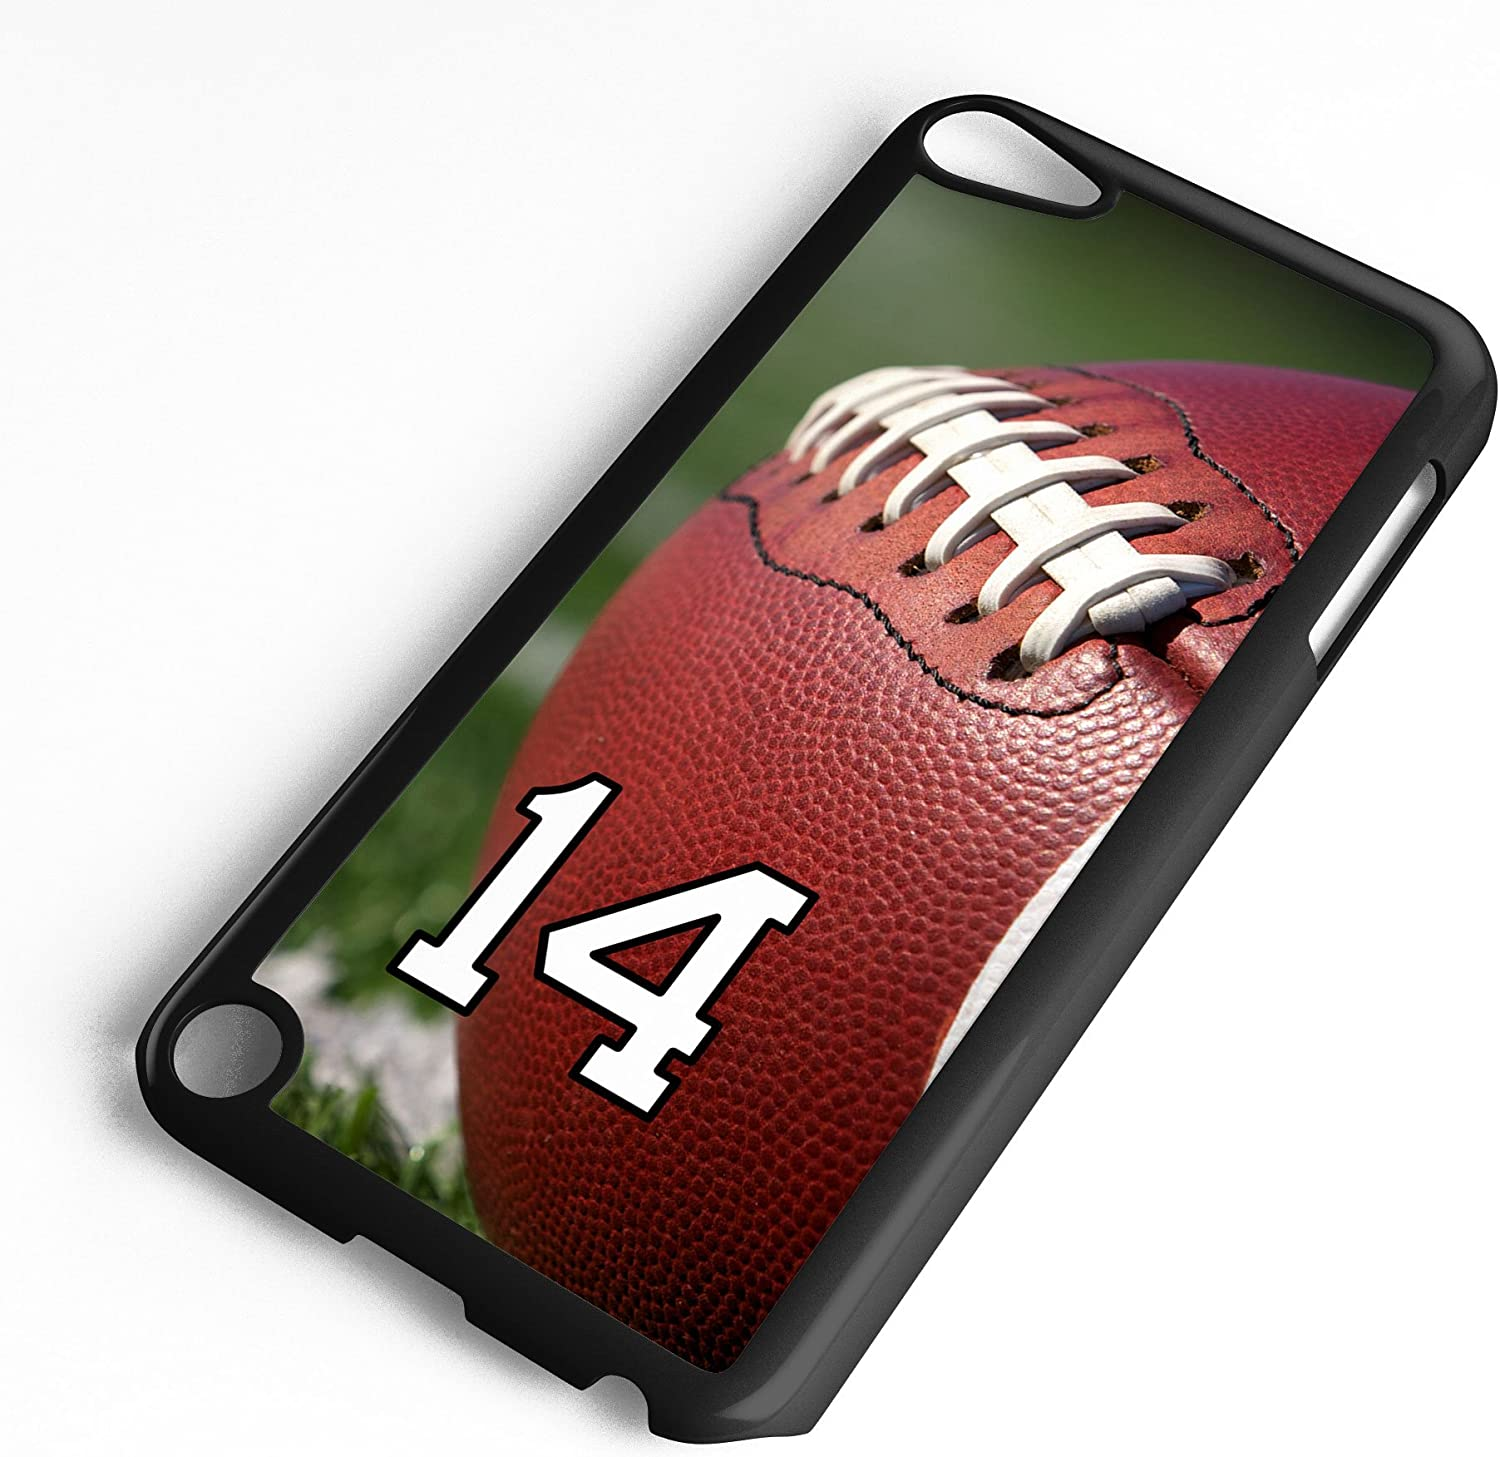 iPod Touch Case Fits 6th Generation or 5th Generation Football #6100 Choose Any Player Jersey Number 19 in Black Plastic Customizable by TYD Designs